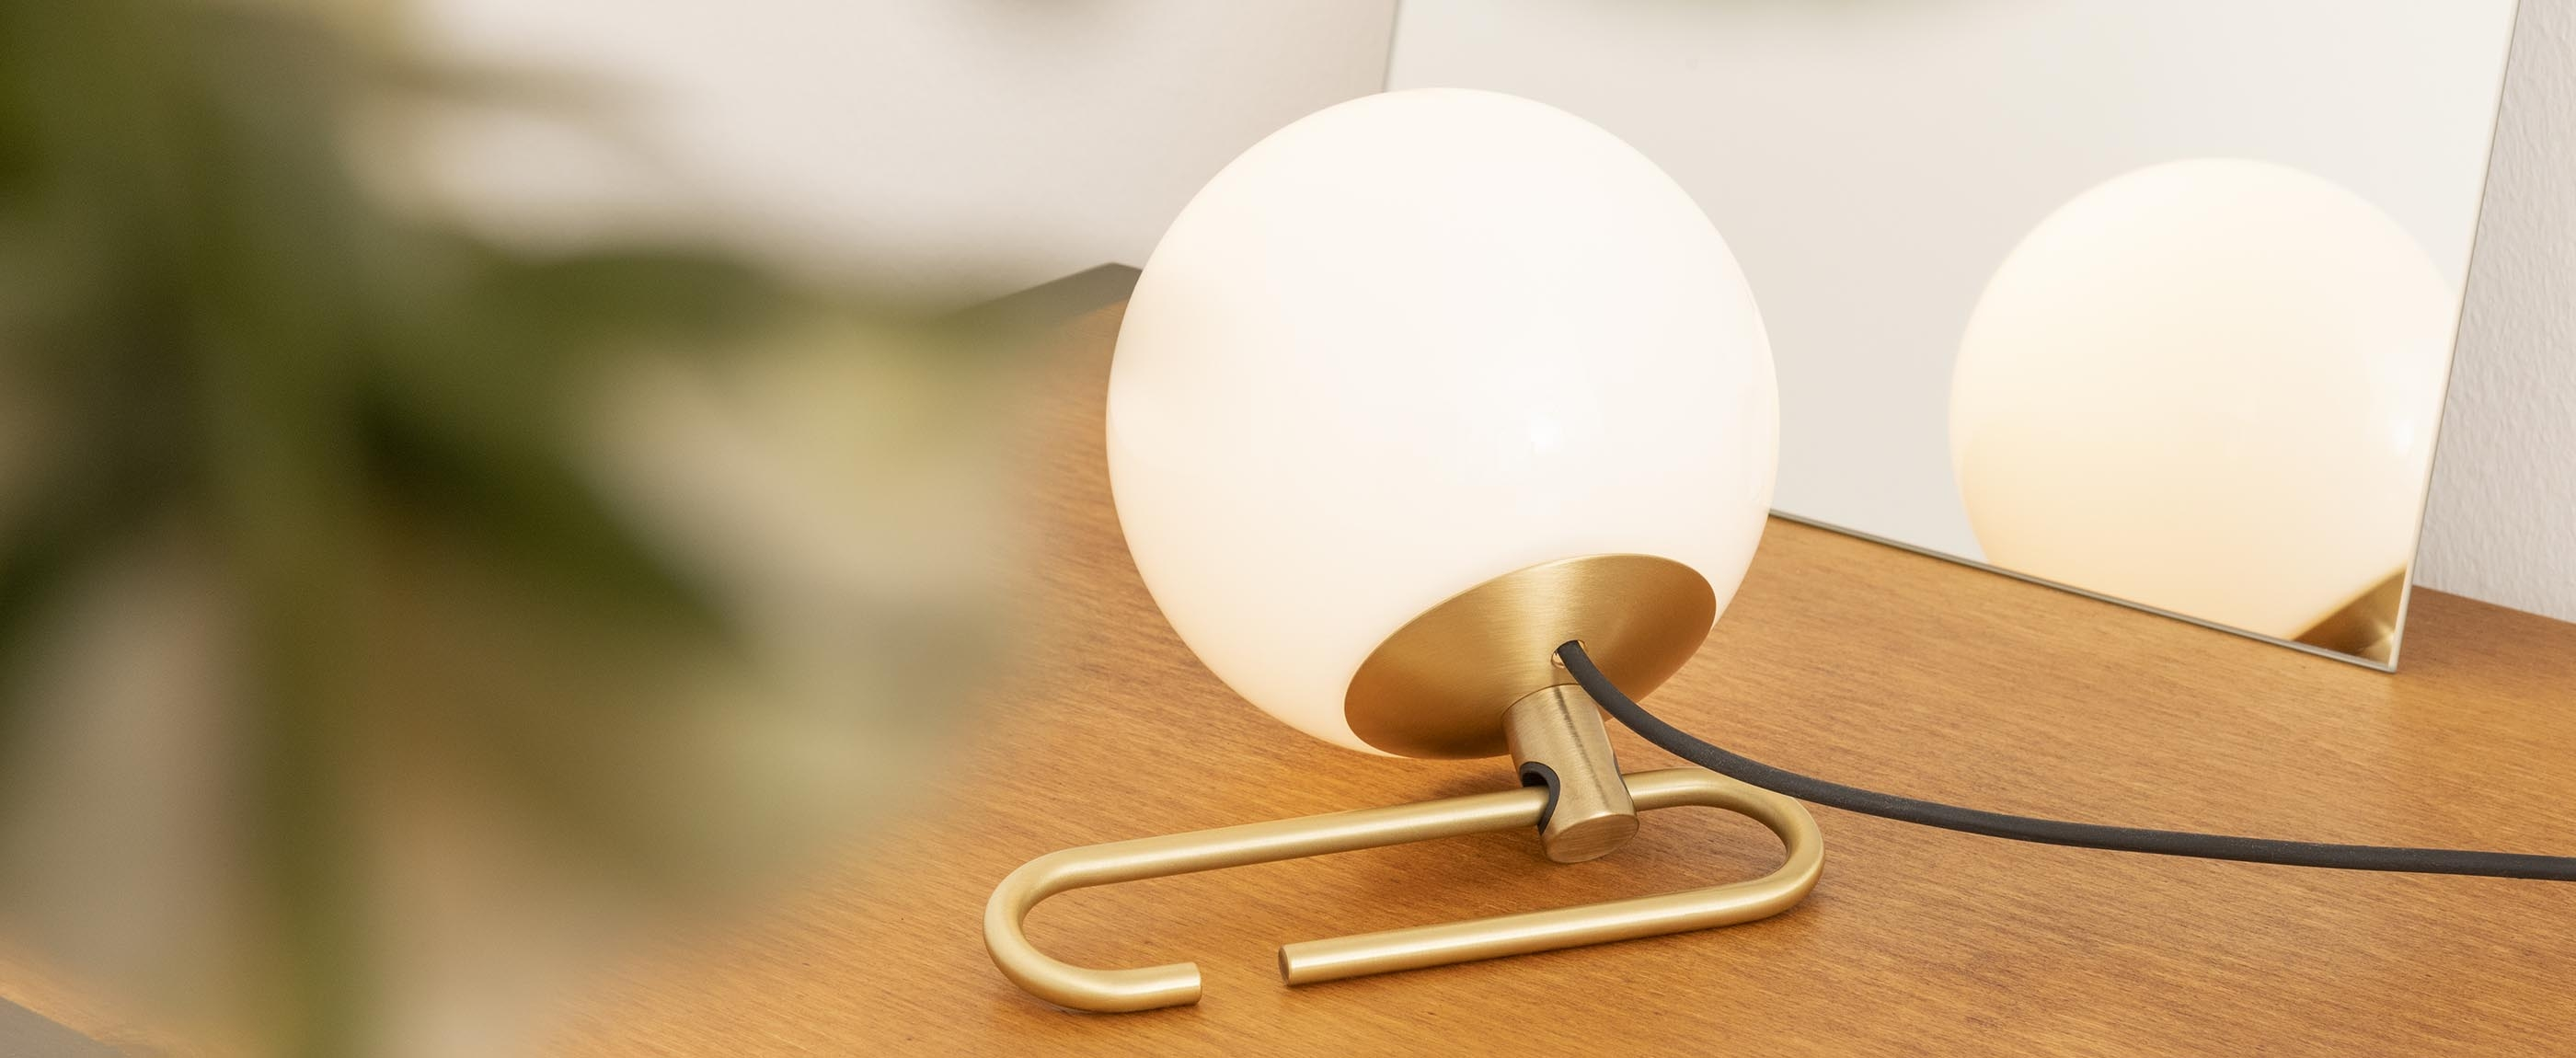 Table & Floor Lamps 25% Off